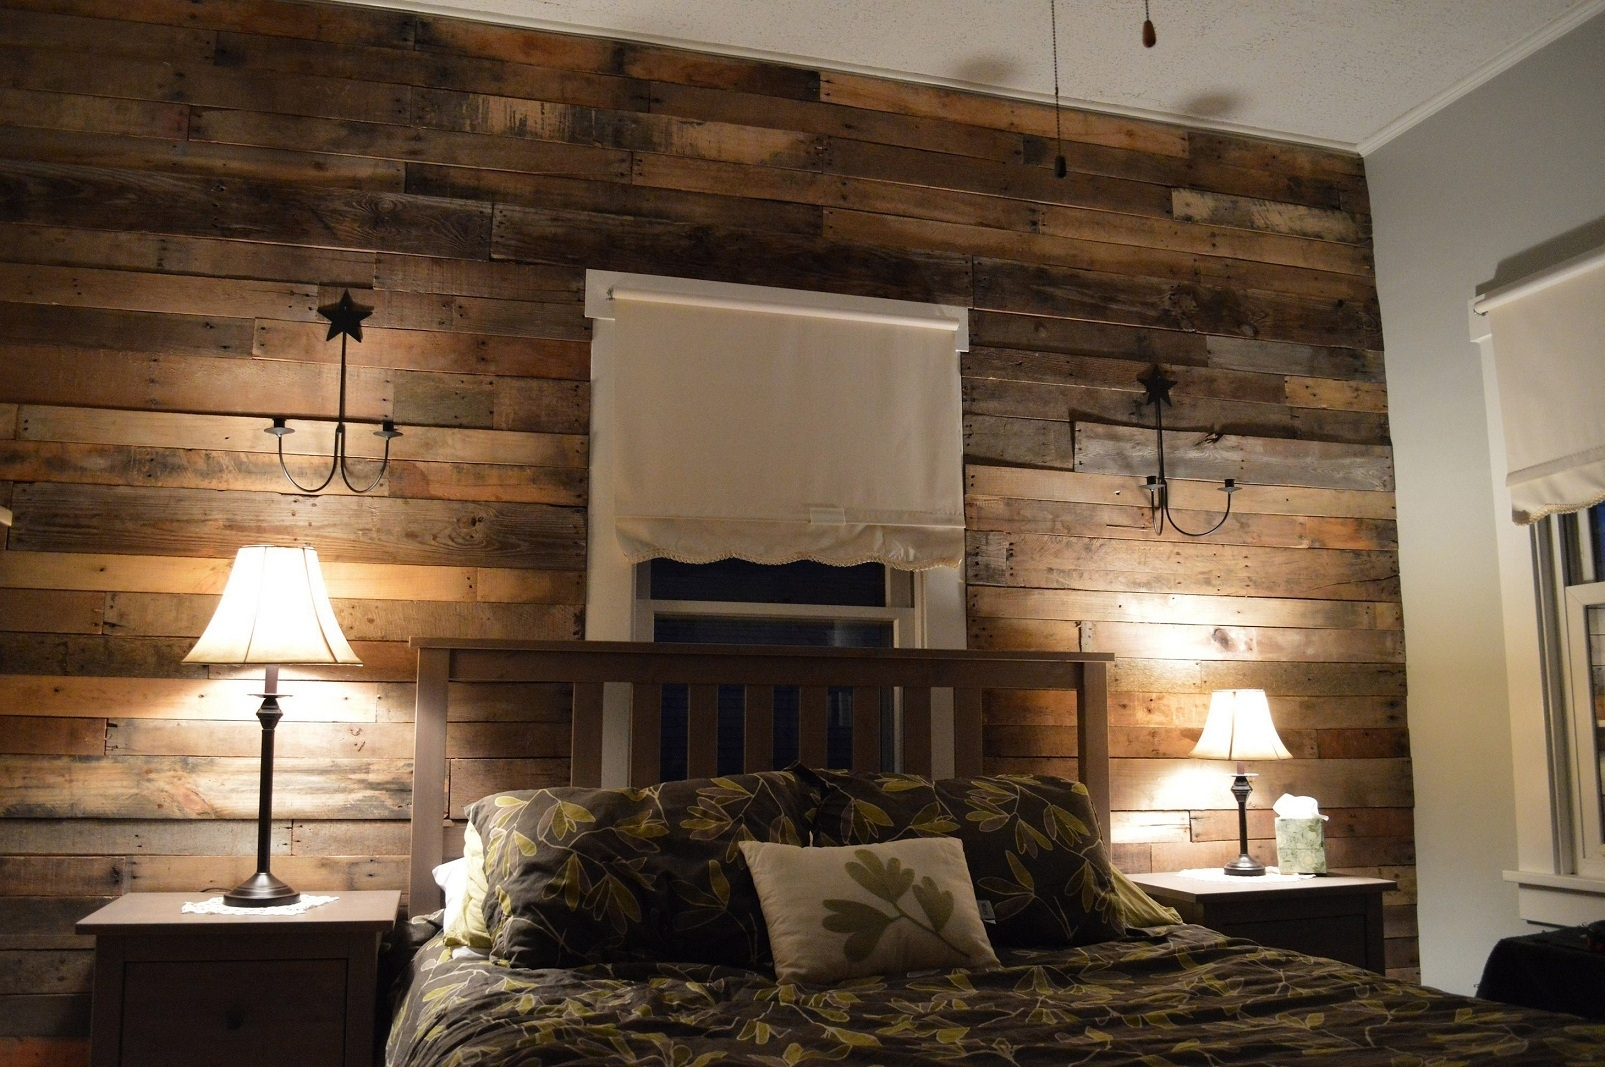 Wood Pallet Wall For Hotter Home Interior Decor, Wall Decor Home With Latest Wood Pallets Wall Accents (View 14 of 15)